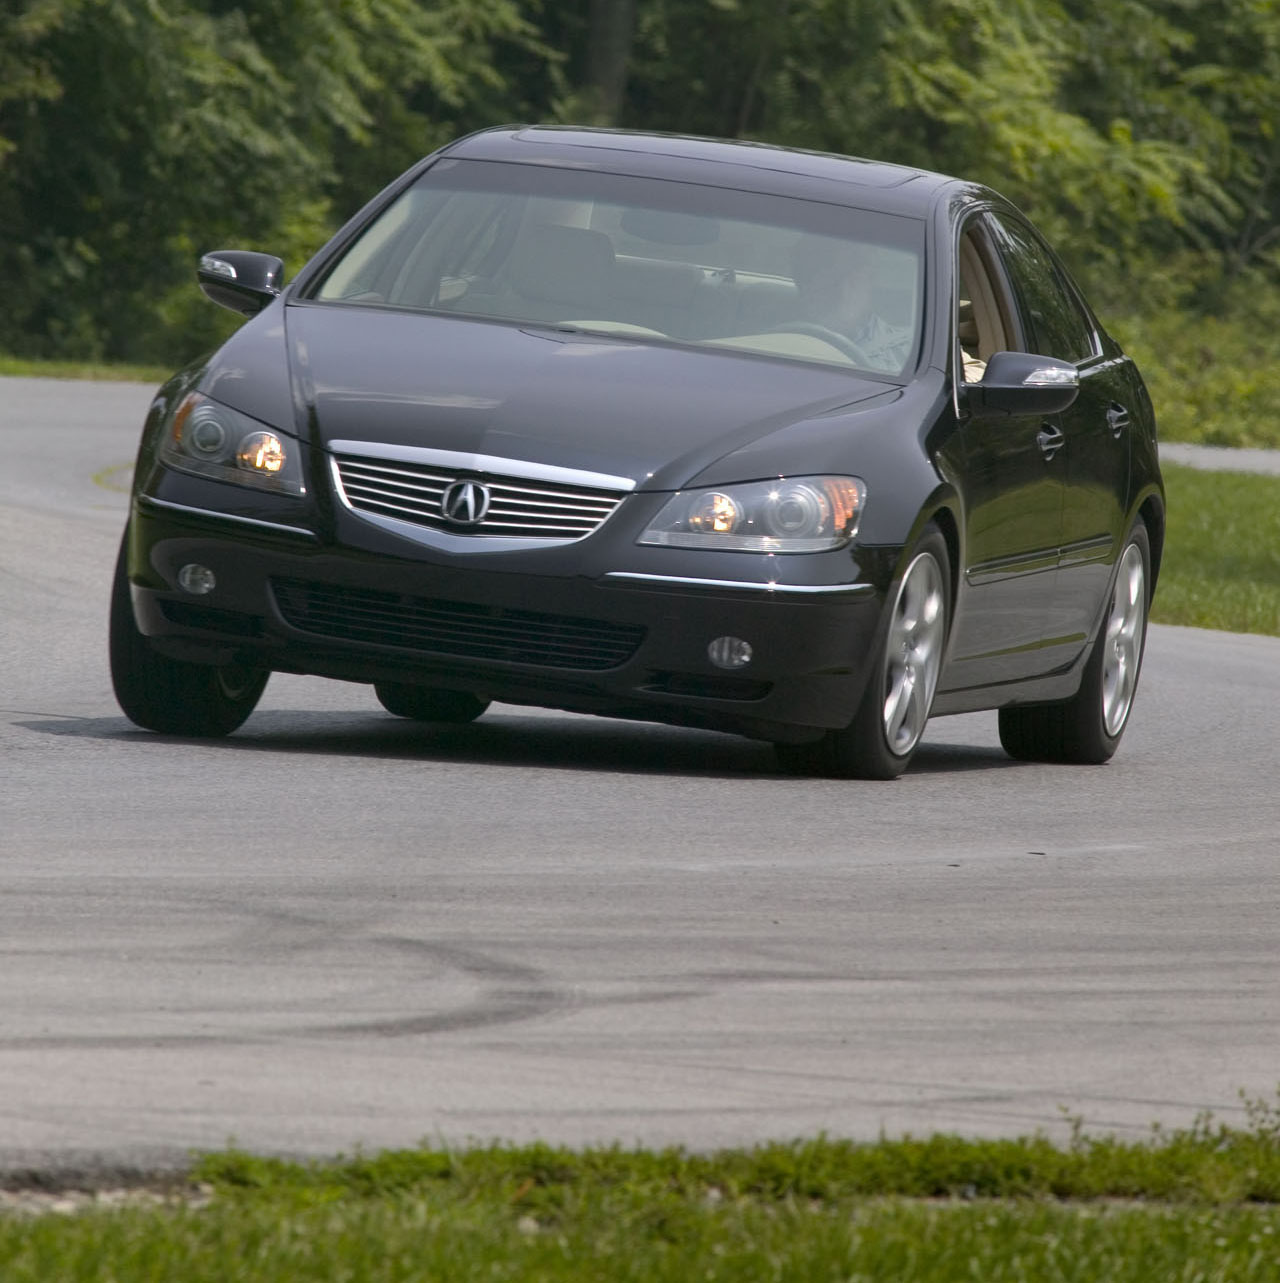 Acura Marks 15 Years Of Super Handling All-Wheel Drive